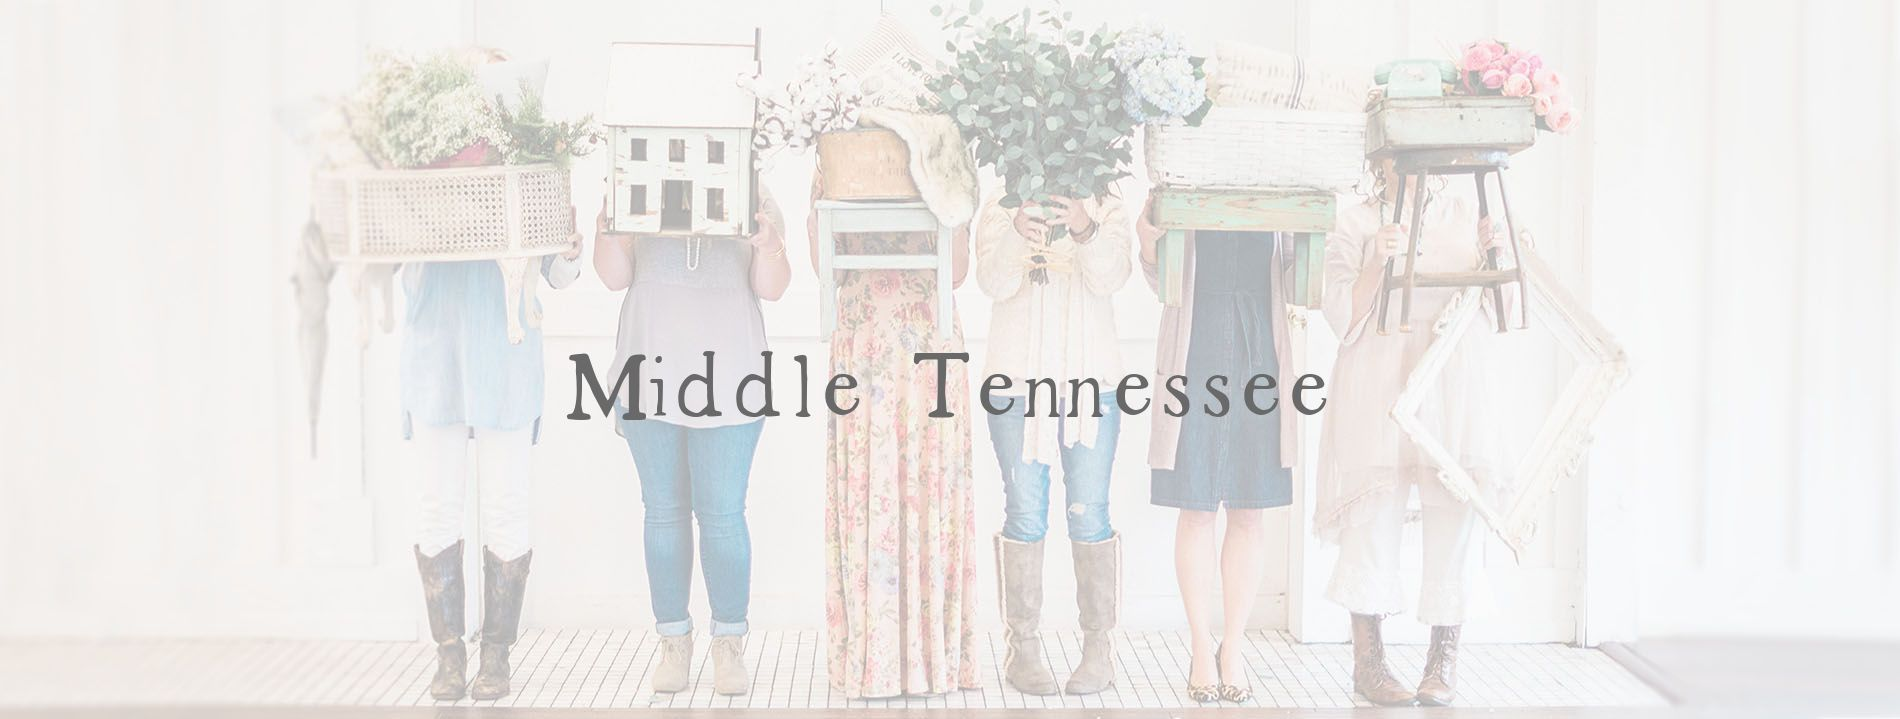 Middle Tennessee